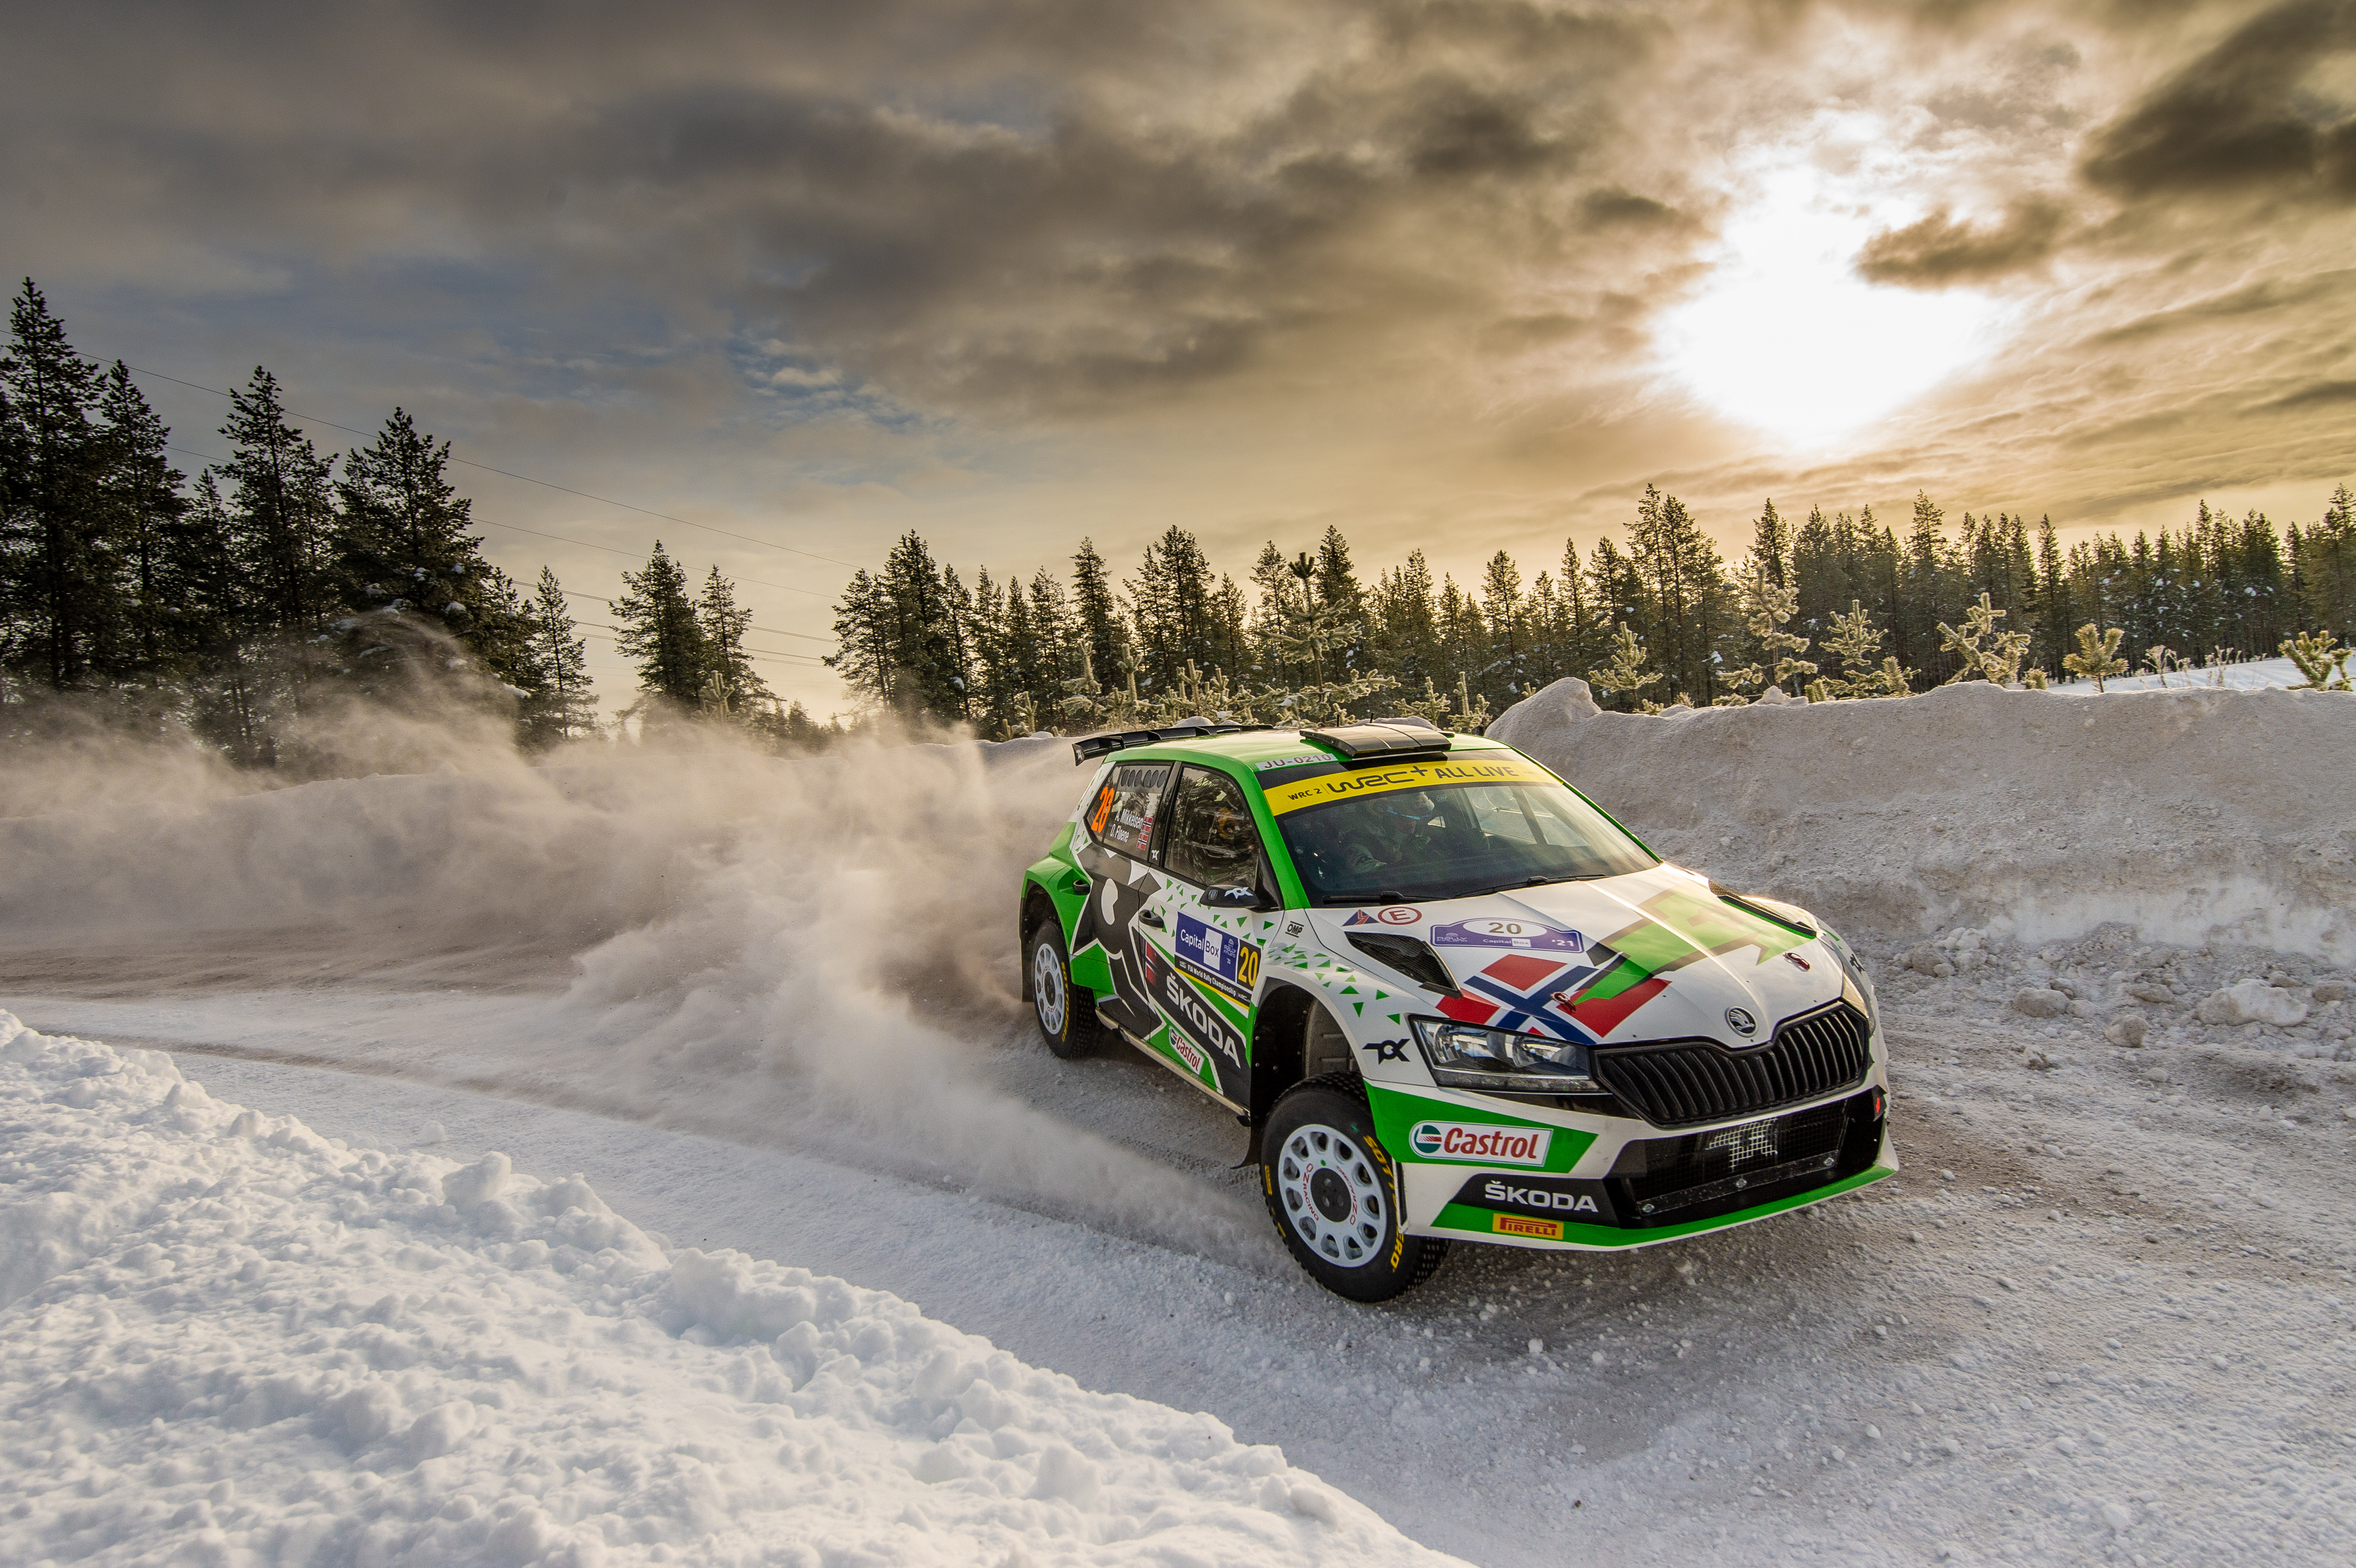 Arctic Rally Finland: SKODA Motorsport supported Andreas Mikkelsen finishes Friday leg third in WRC2 - Image 7